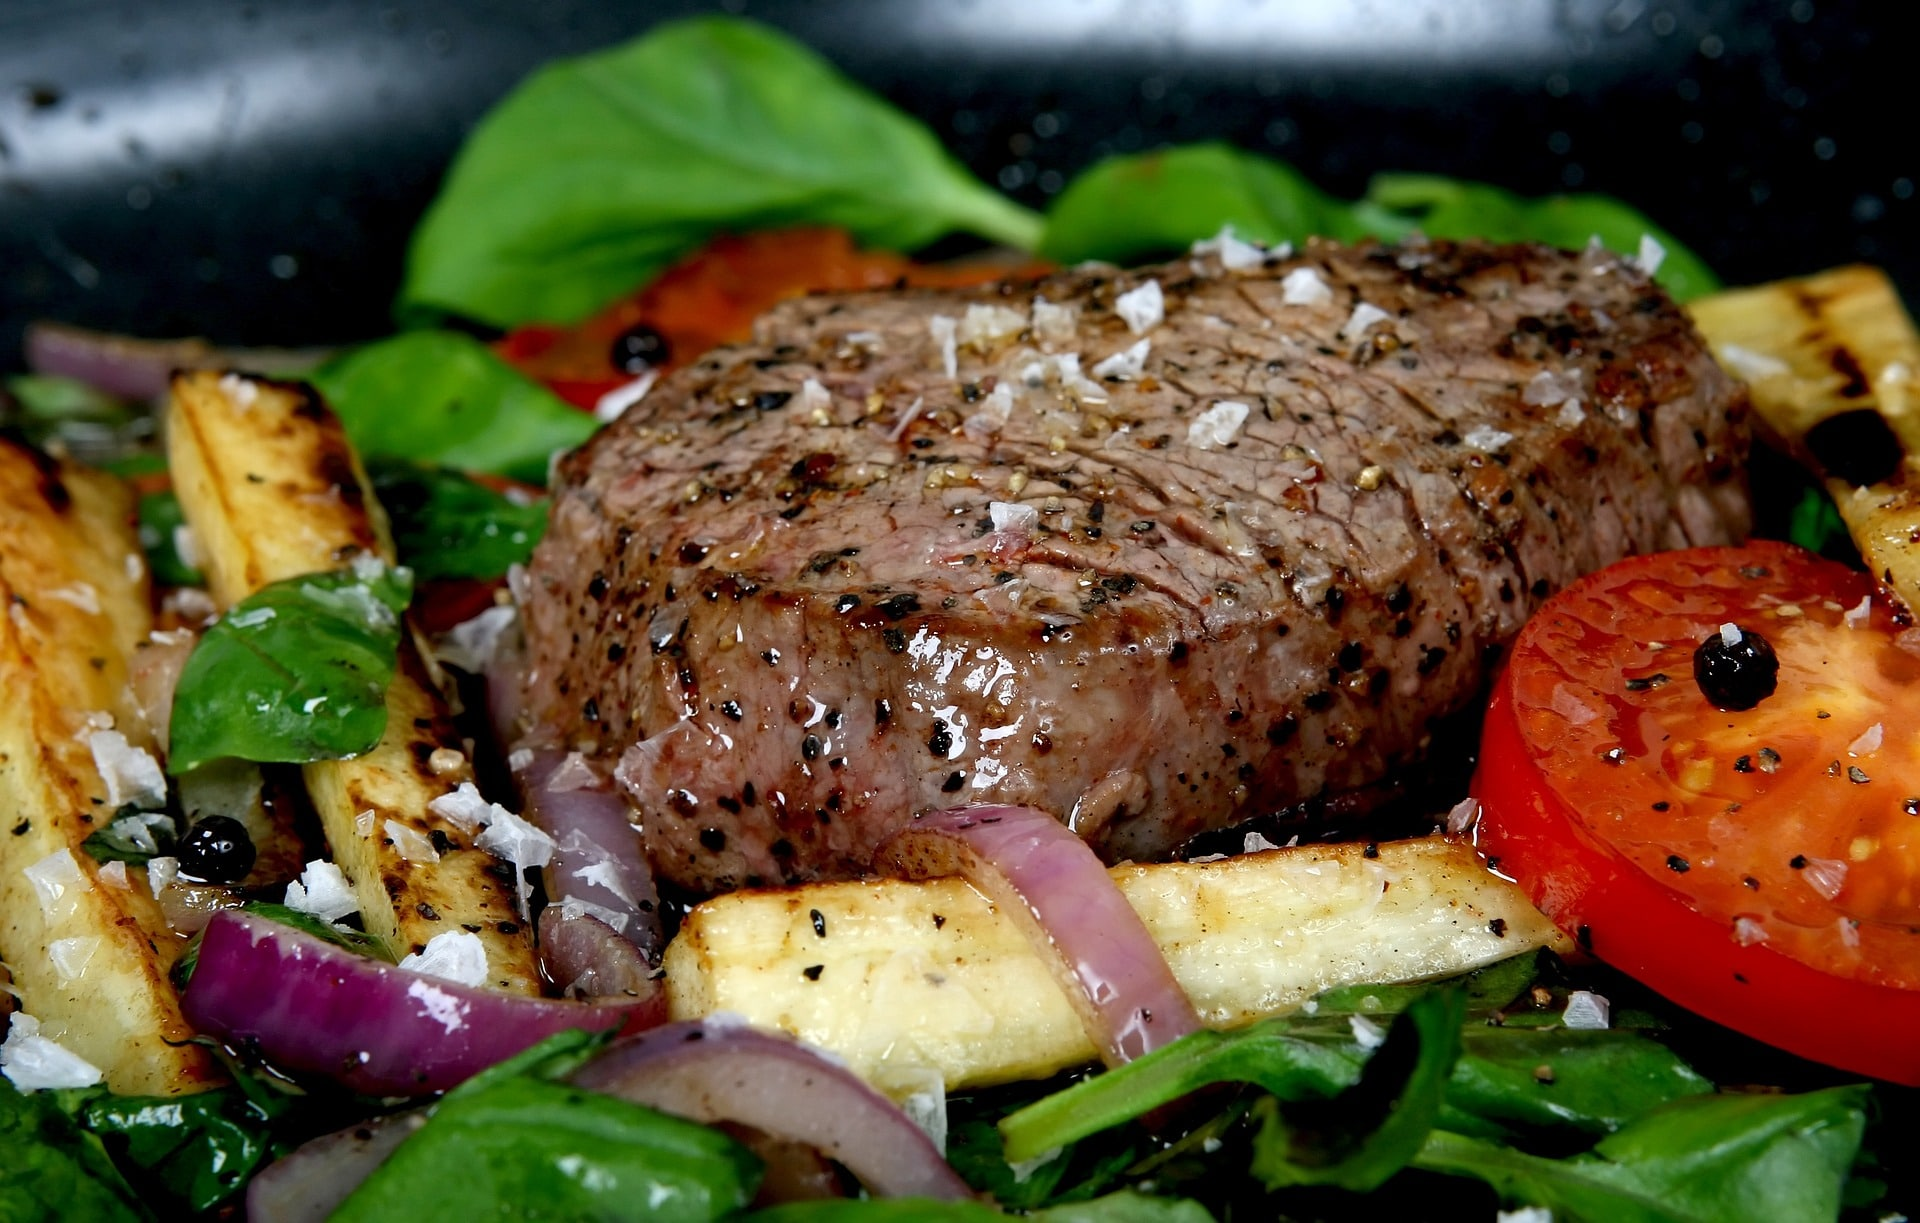 Whole Grilled Beef Tenderloin with Roast Garlic Blue Cheese via @mermaidsandmojitos